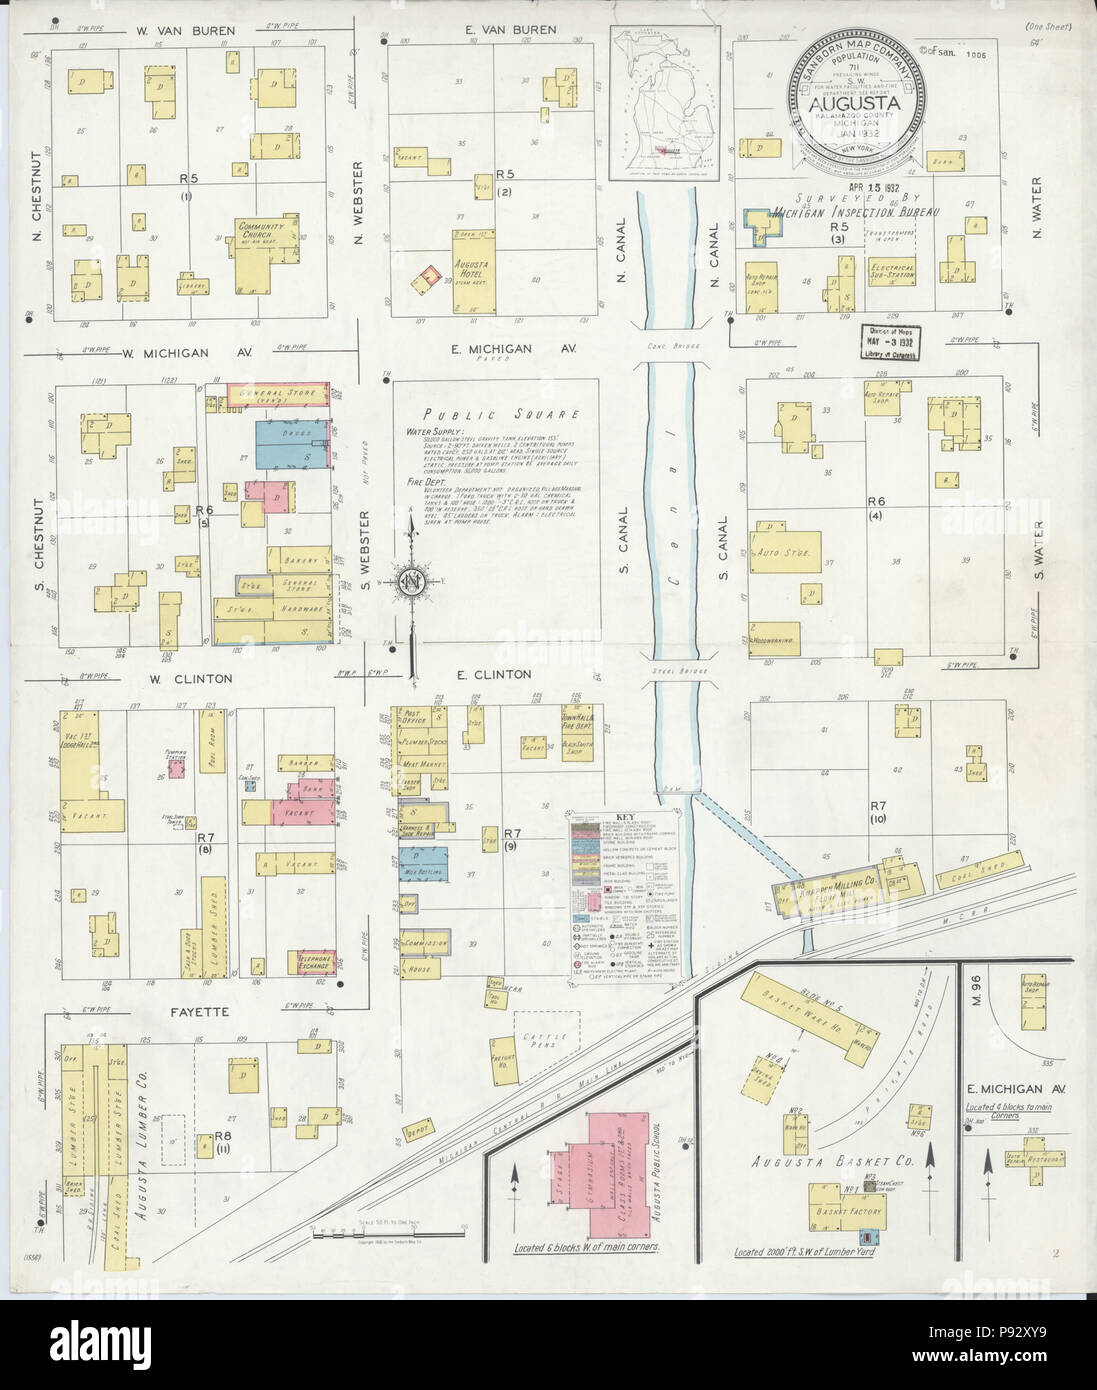 491 Sanborn Fire Insurance Map from Augusta, Kalamazoo County ... on stewart county map, livonia county map, cooper township map, chillicothe county map, kalamazoo gis maps, joliet county map, kent county map, harrisburg pa county map, eugene county map, east idaho county map, akron county map, grand rapids county map, wayne county map, michigan map, springfield il county map, ottawa county map, sioux city county map, roosevelt county map, little rock county map, sedona county map,